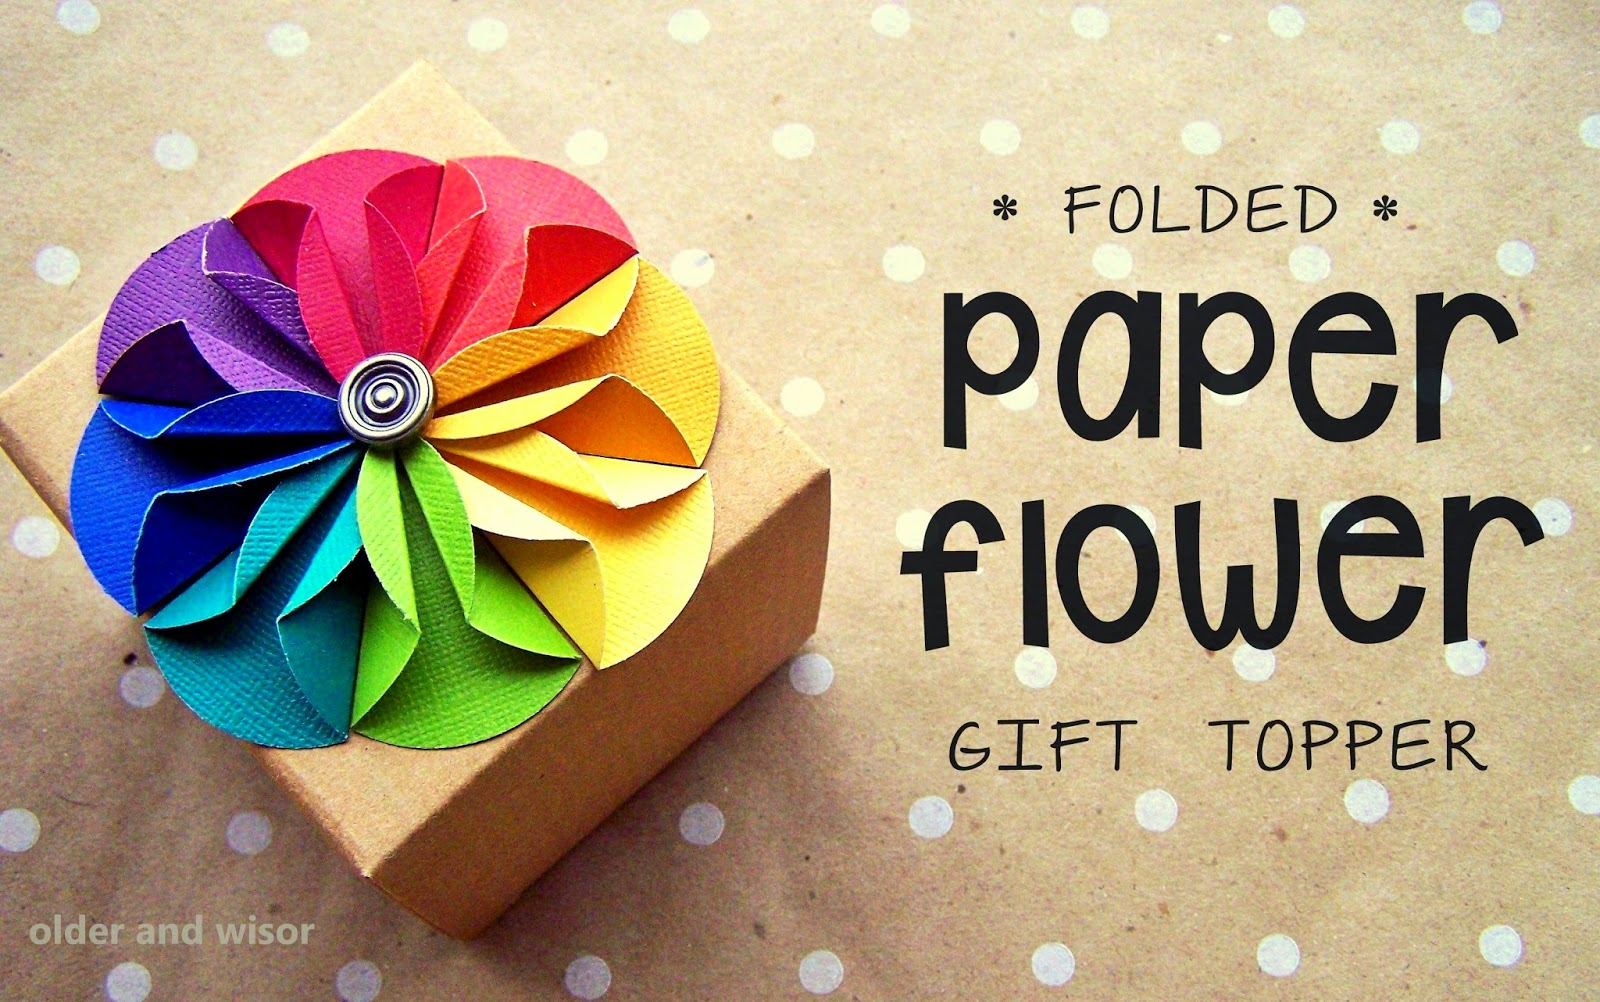 Older And Wisor Folded Paper Flower Gift Topper